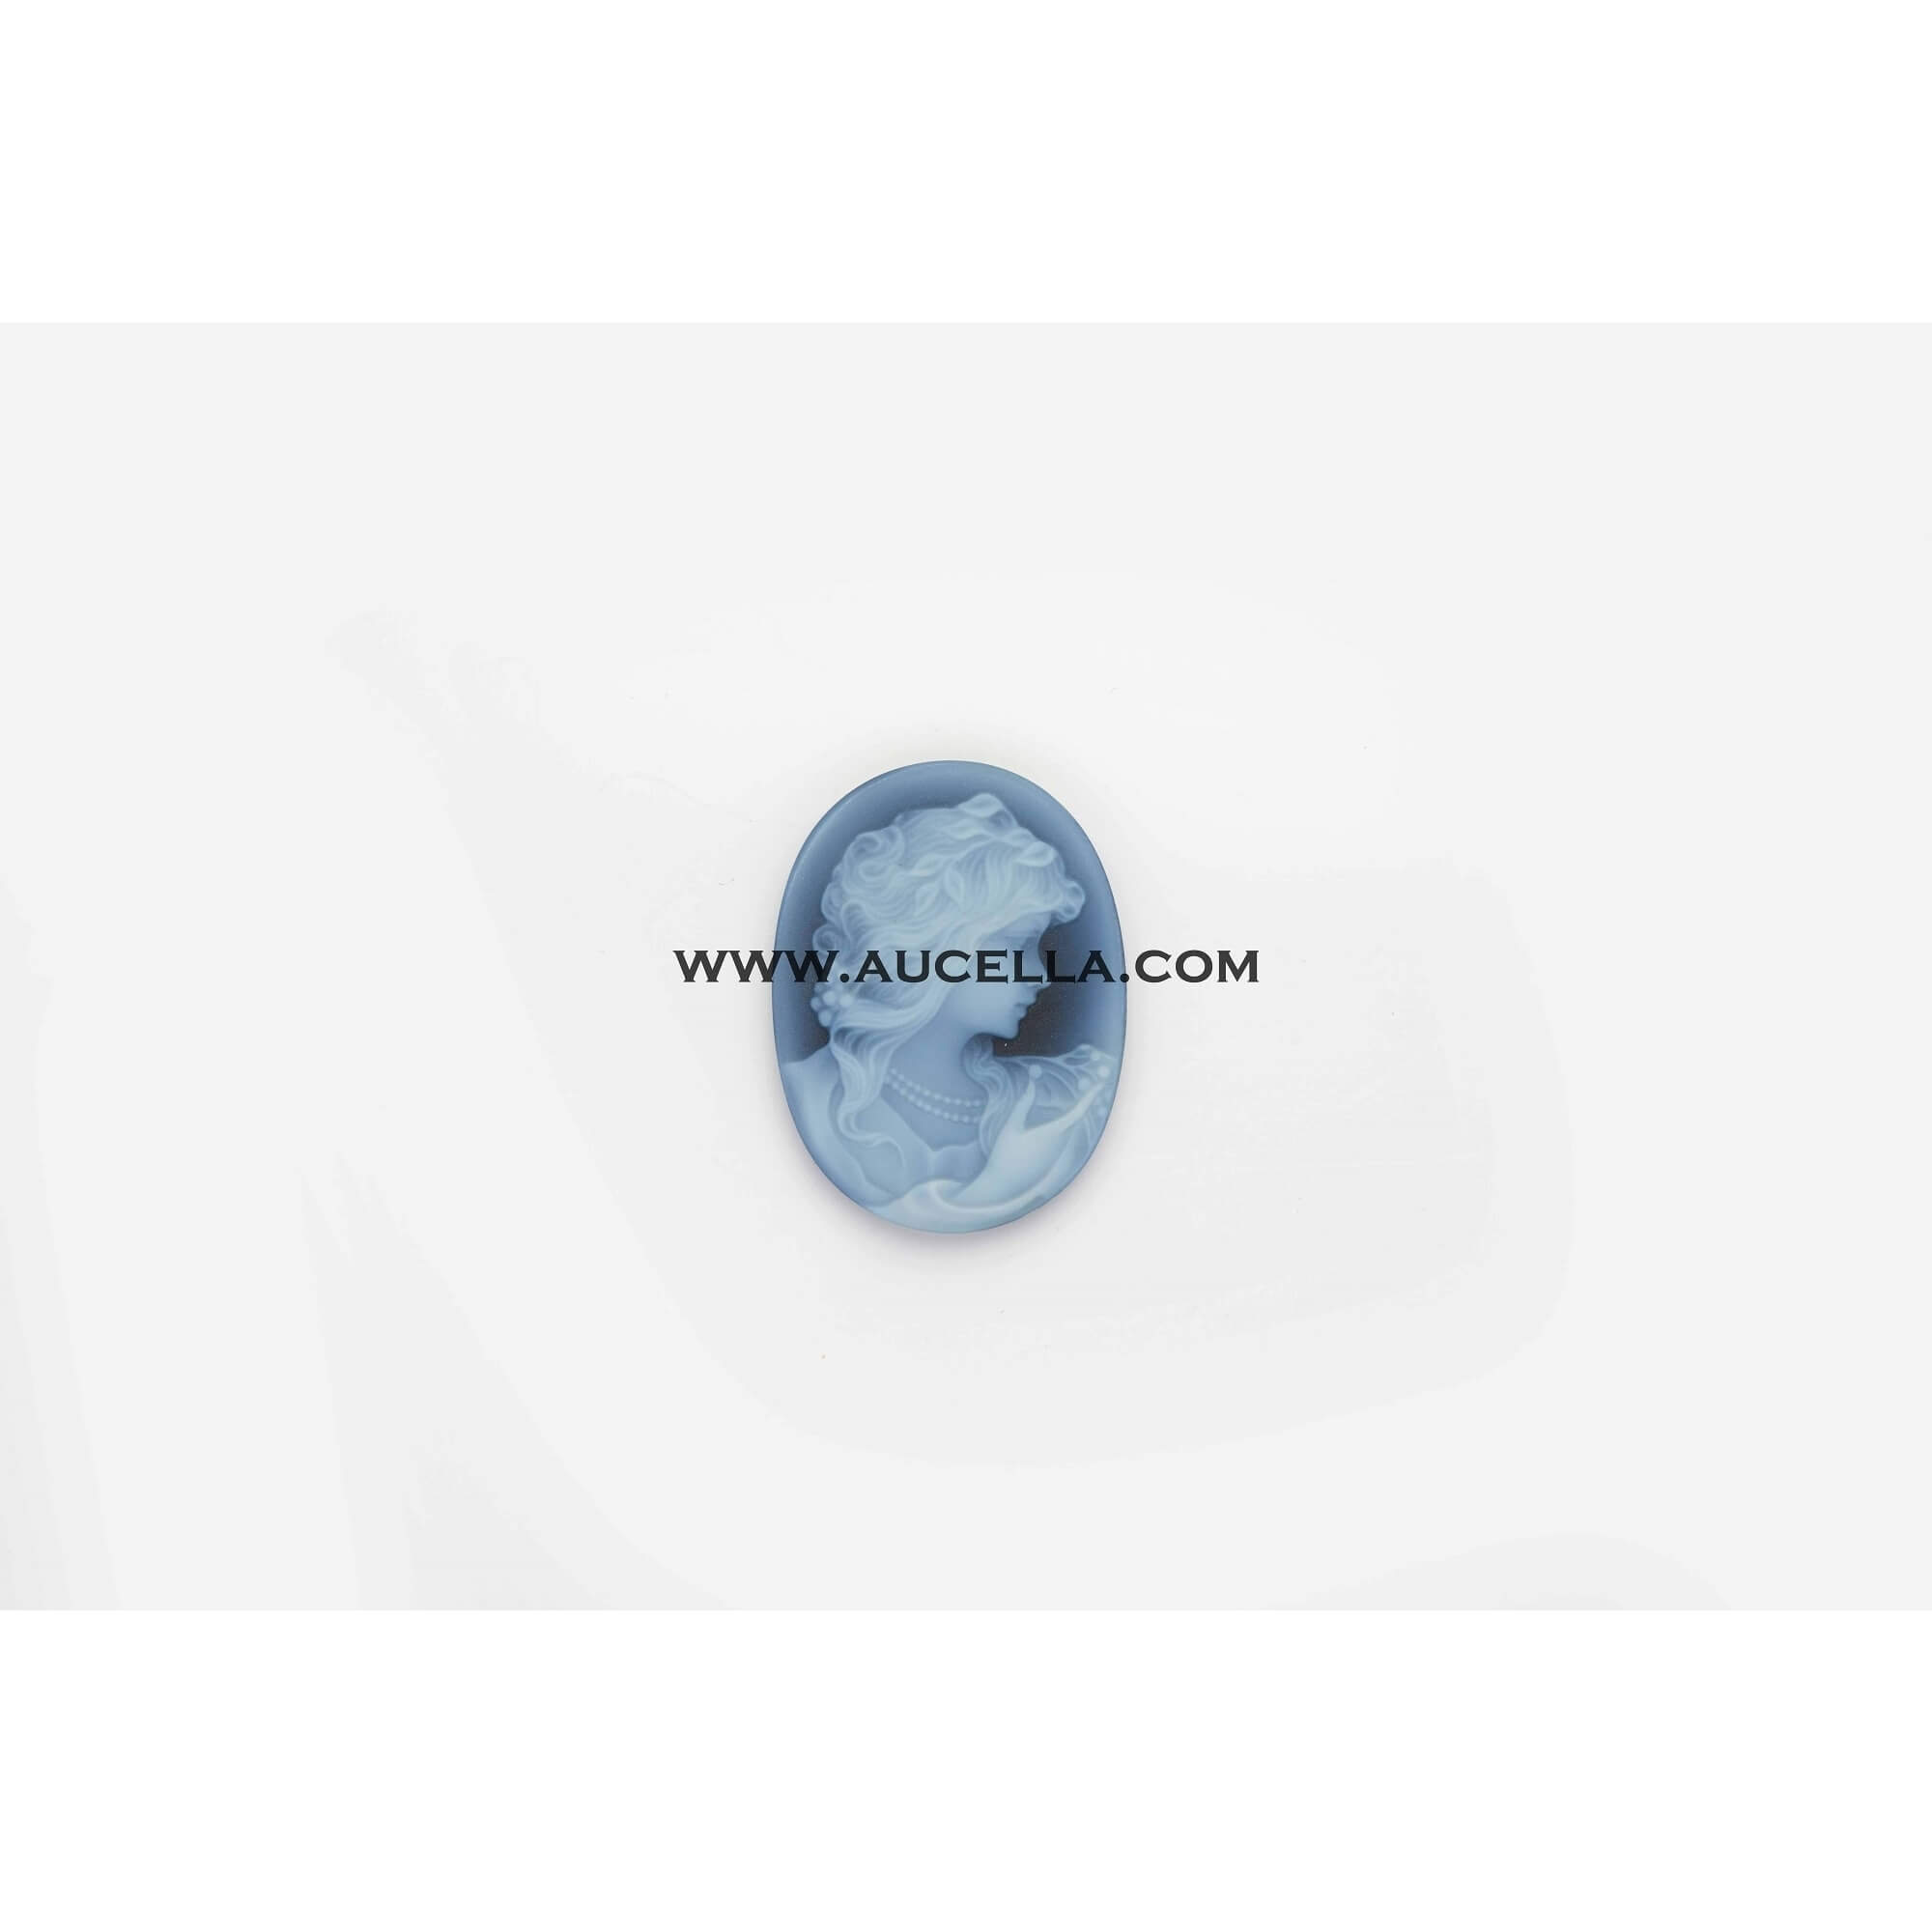 Agate cameo 40 mm